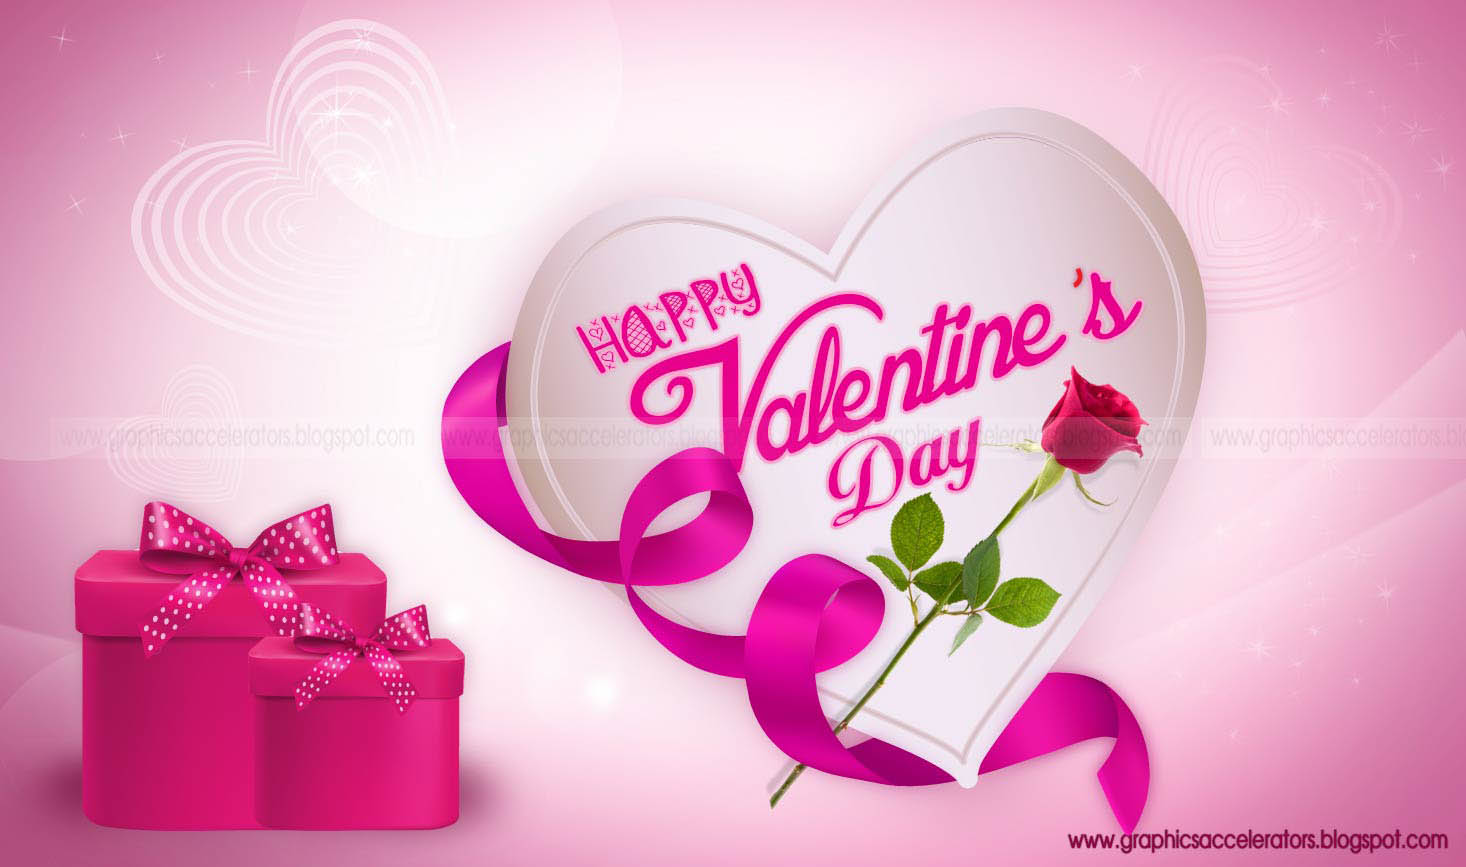 Valentines day greeting card messages malayalam valentines day info valentines day greeting card messages malayalam kristyandbryce Image collections